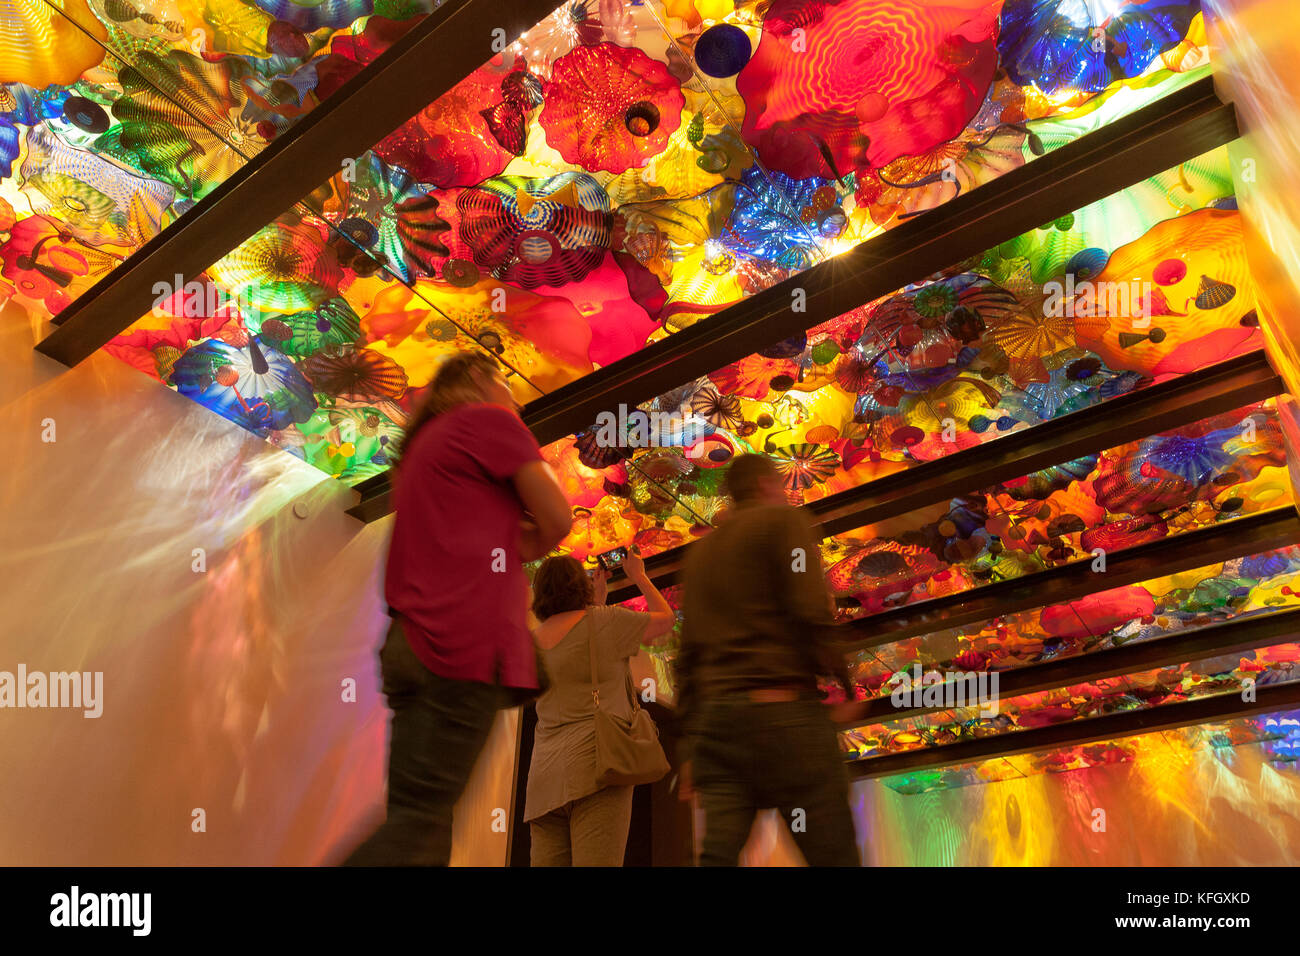 WA14109-00...WASHINGTON - Ceiling inside Chihuly Garden And Glass building. - Stock Image